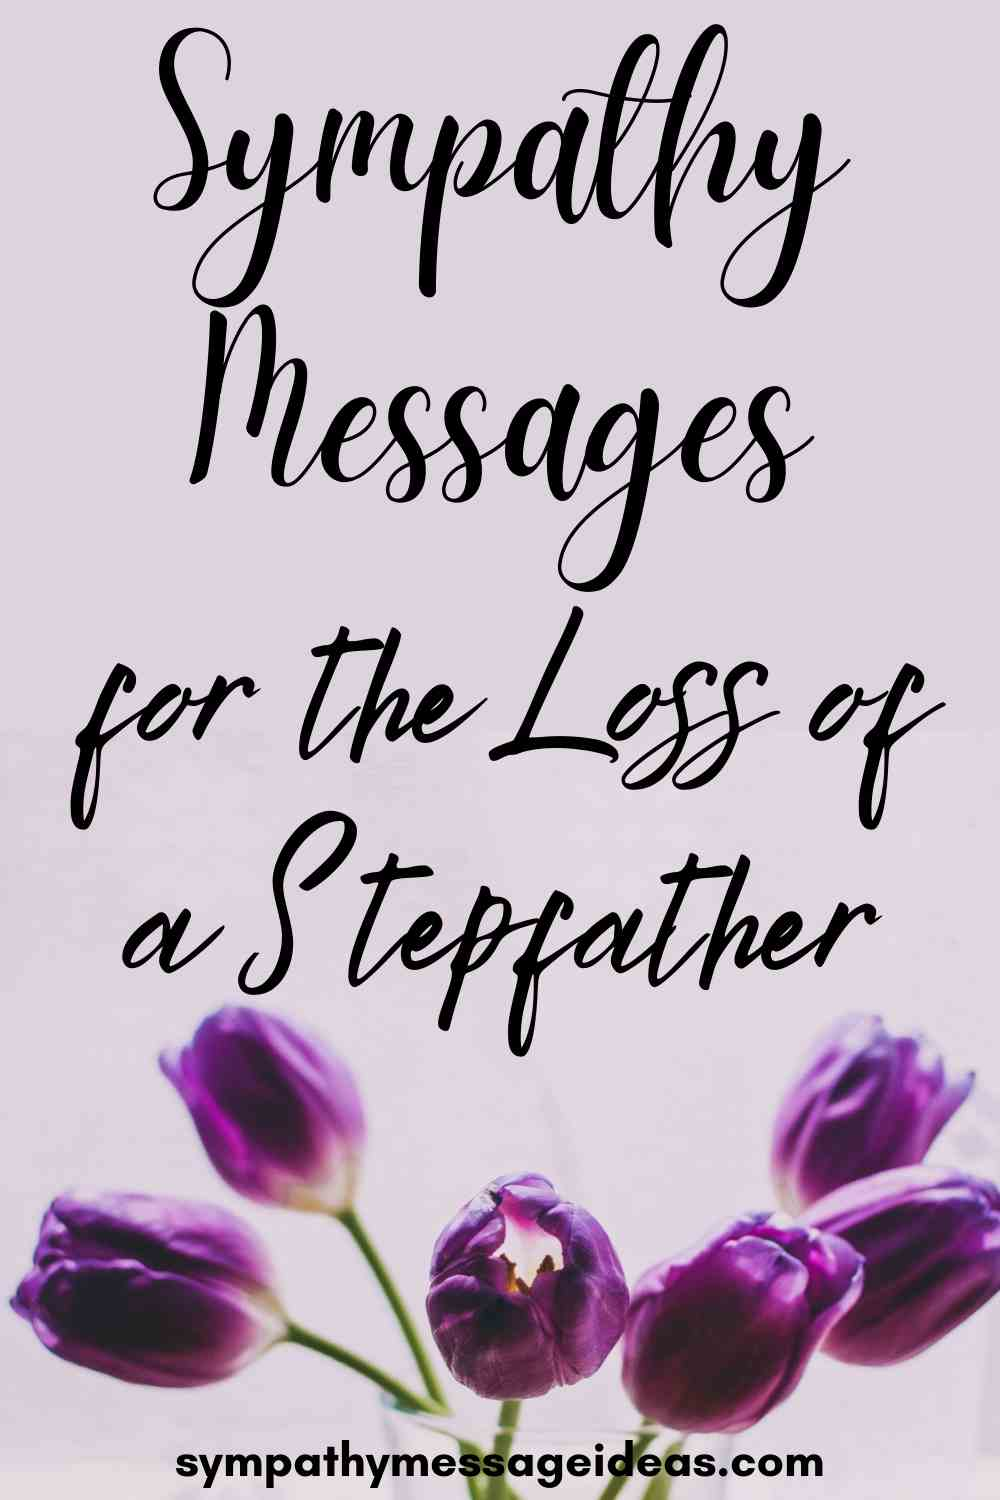 Sympathy Messages for Loss of Stepfather